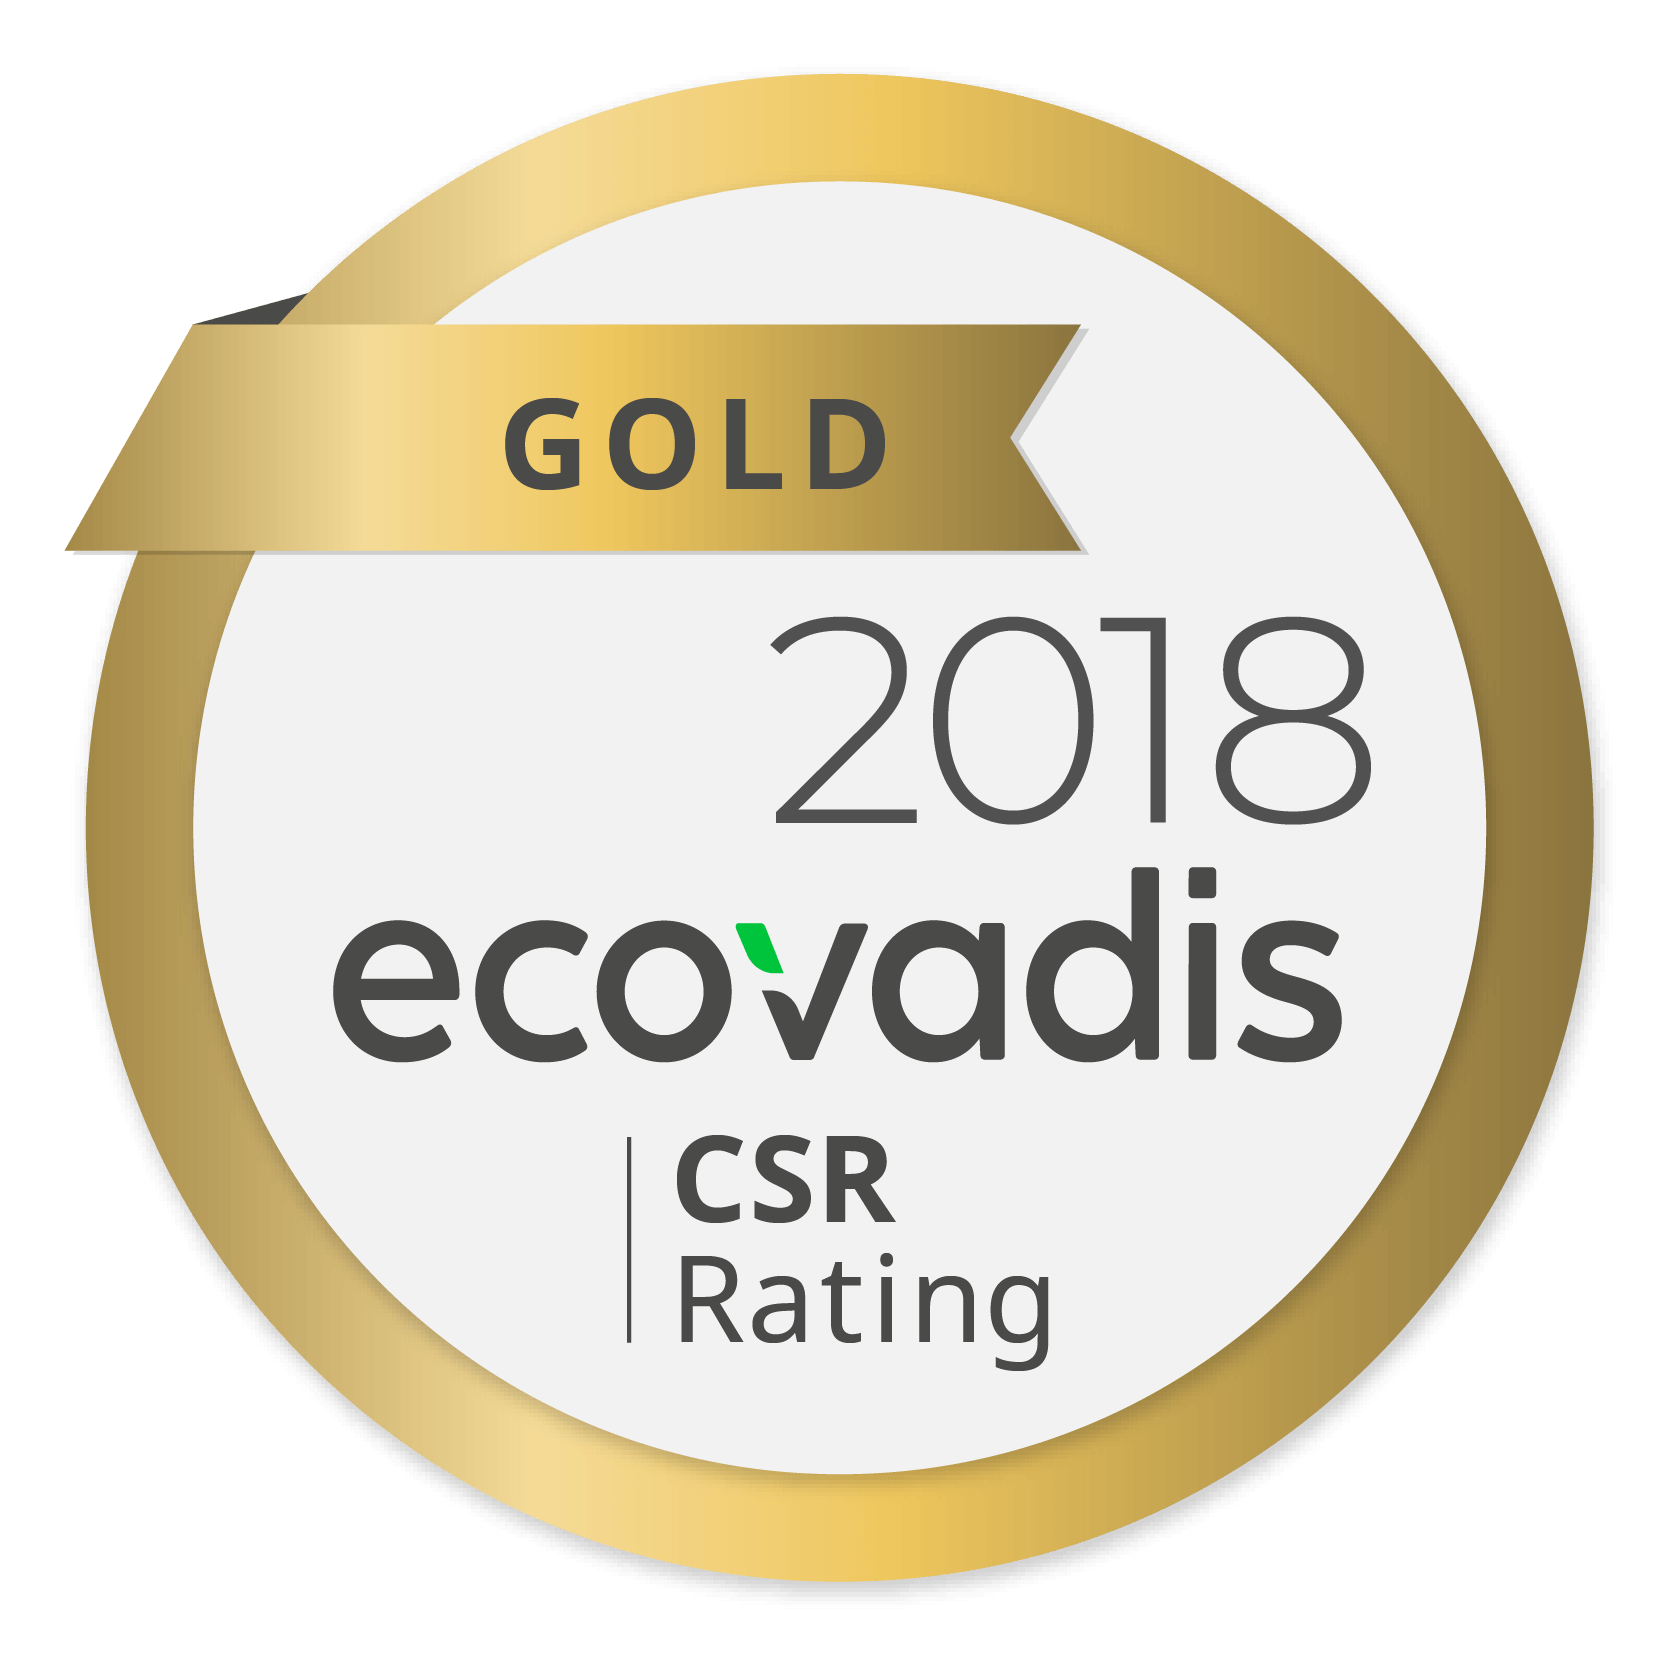 20181115 Ricoh awarded highest gold rating in EcoVadis global supplier survey for fourth year running